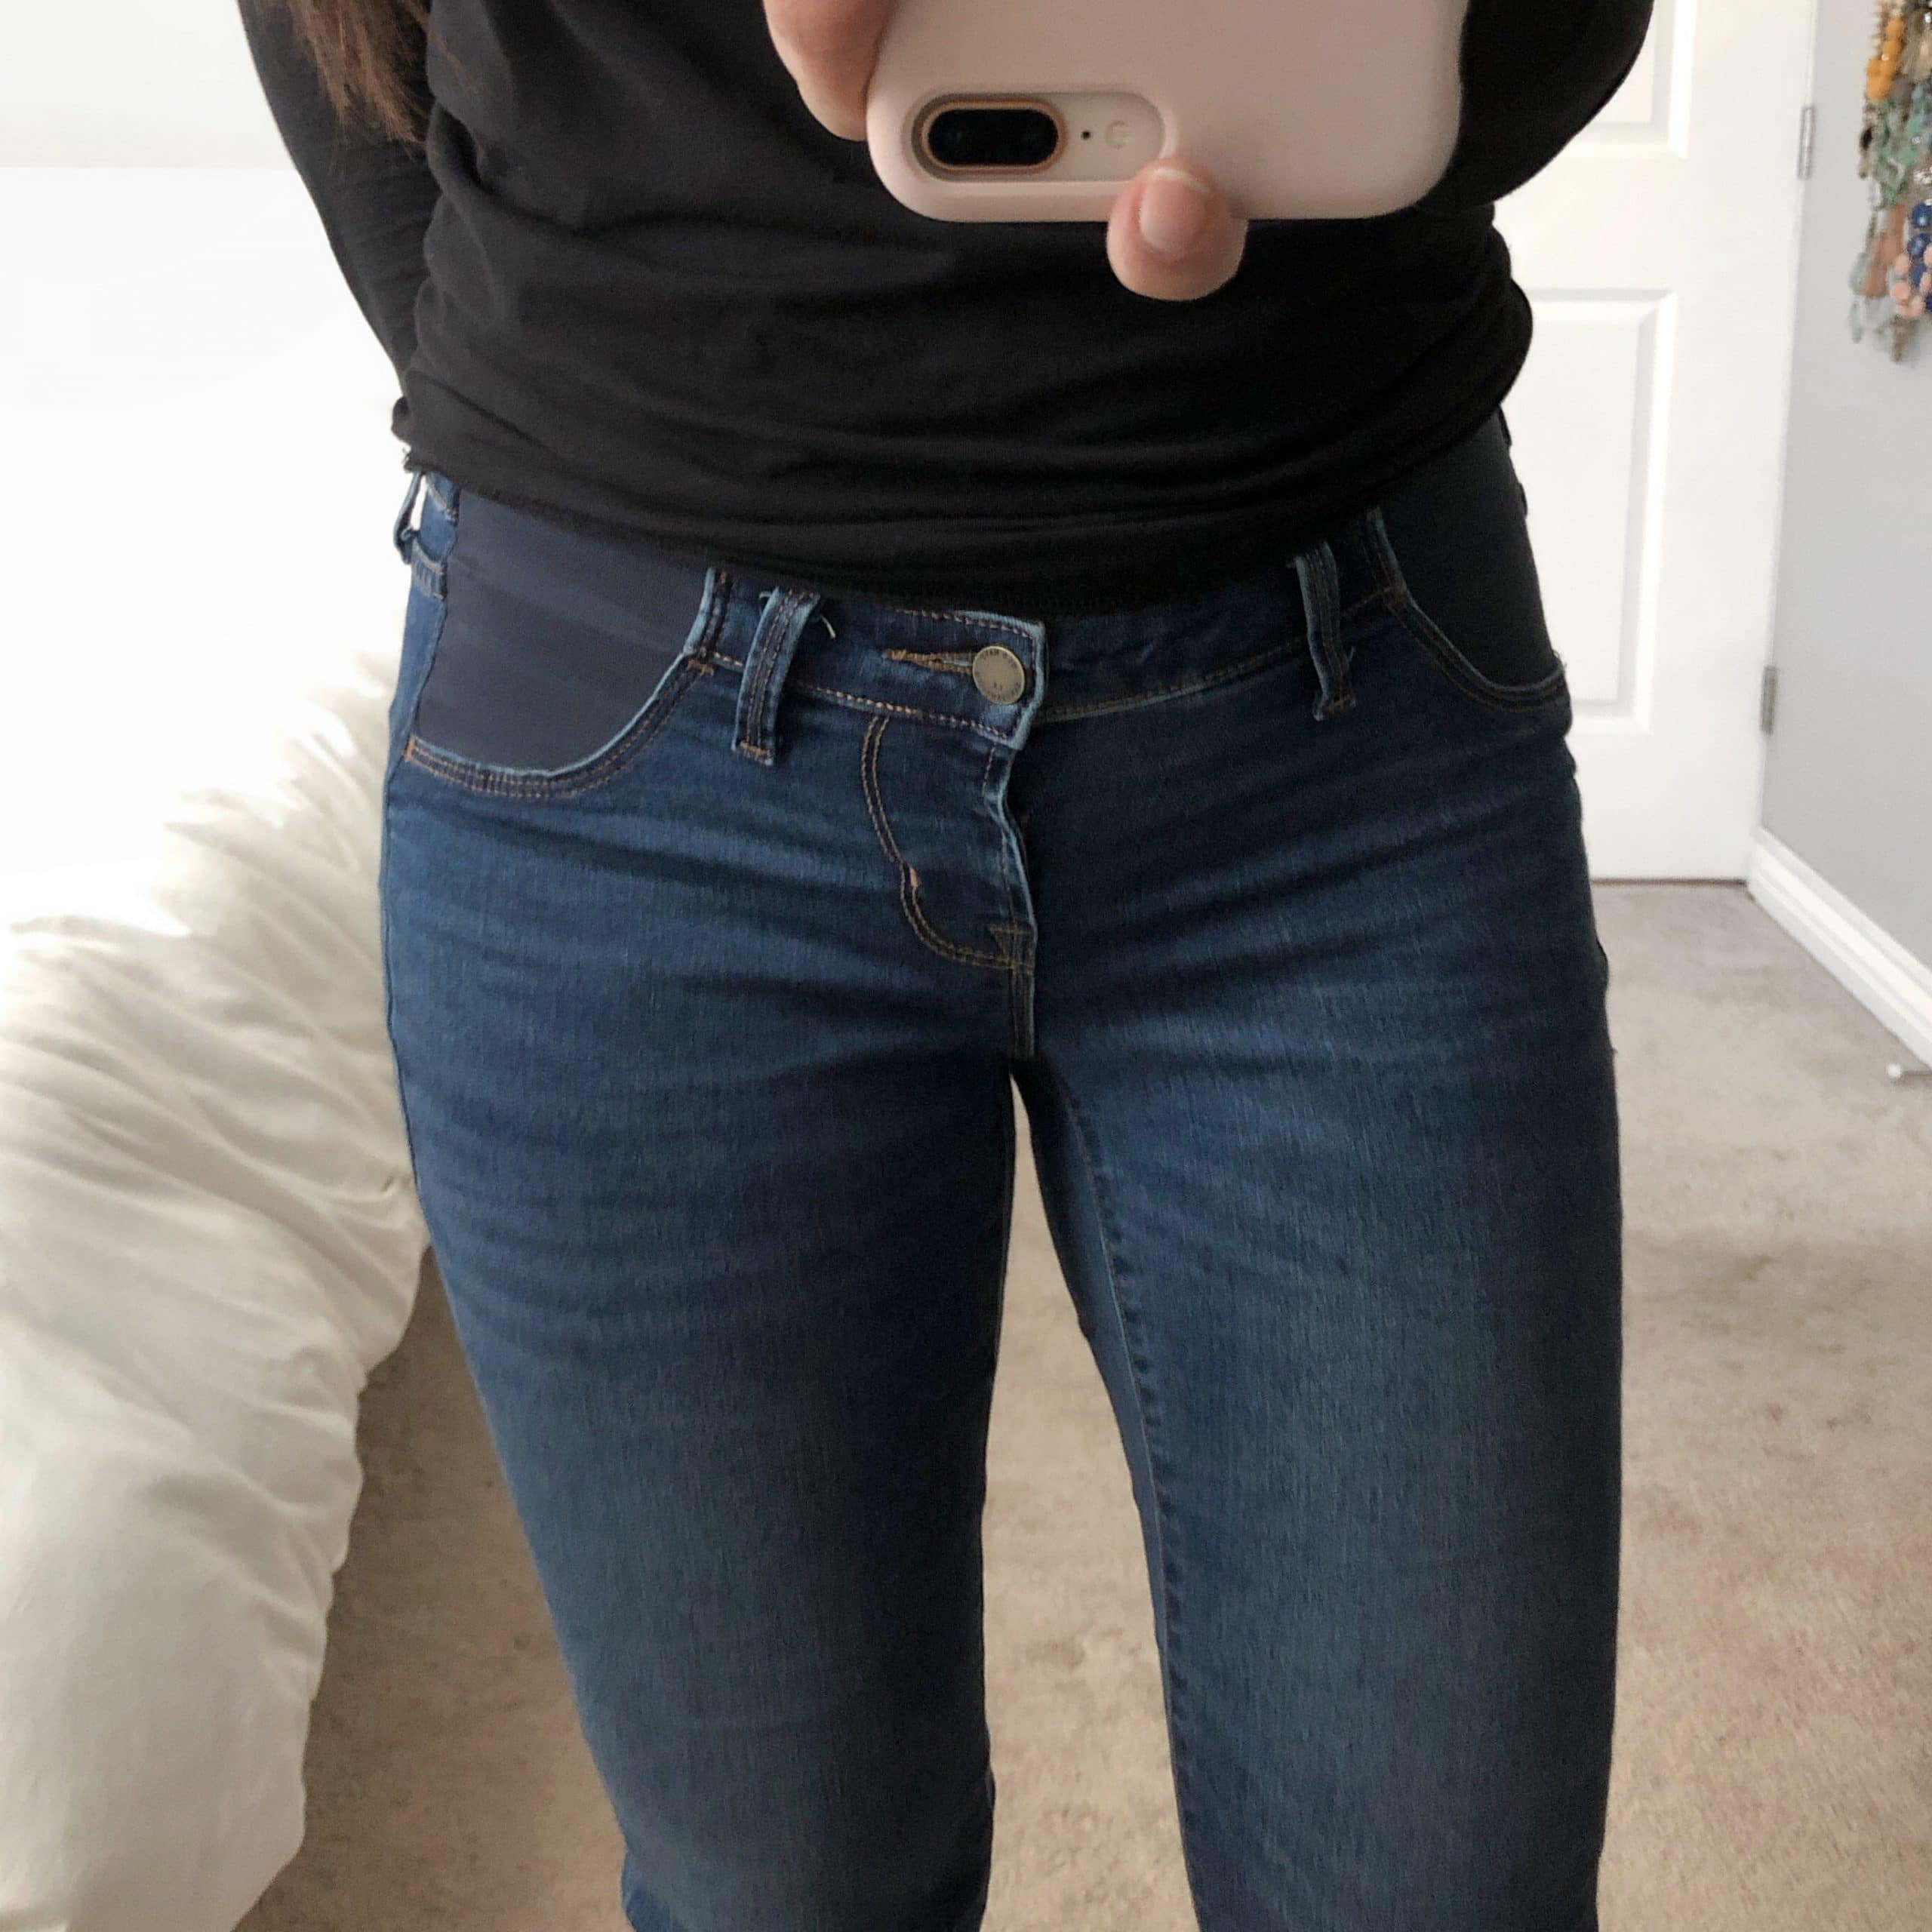 68881e4570c Maternity Jeans Distressed + Black Tee Maternity Skinnies + Black Top